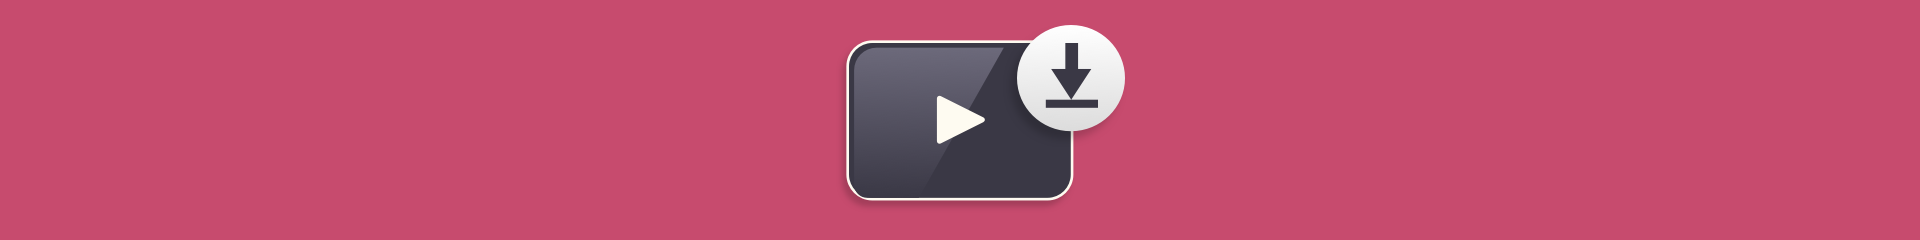 youtube downloaders button